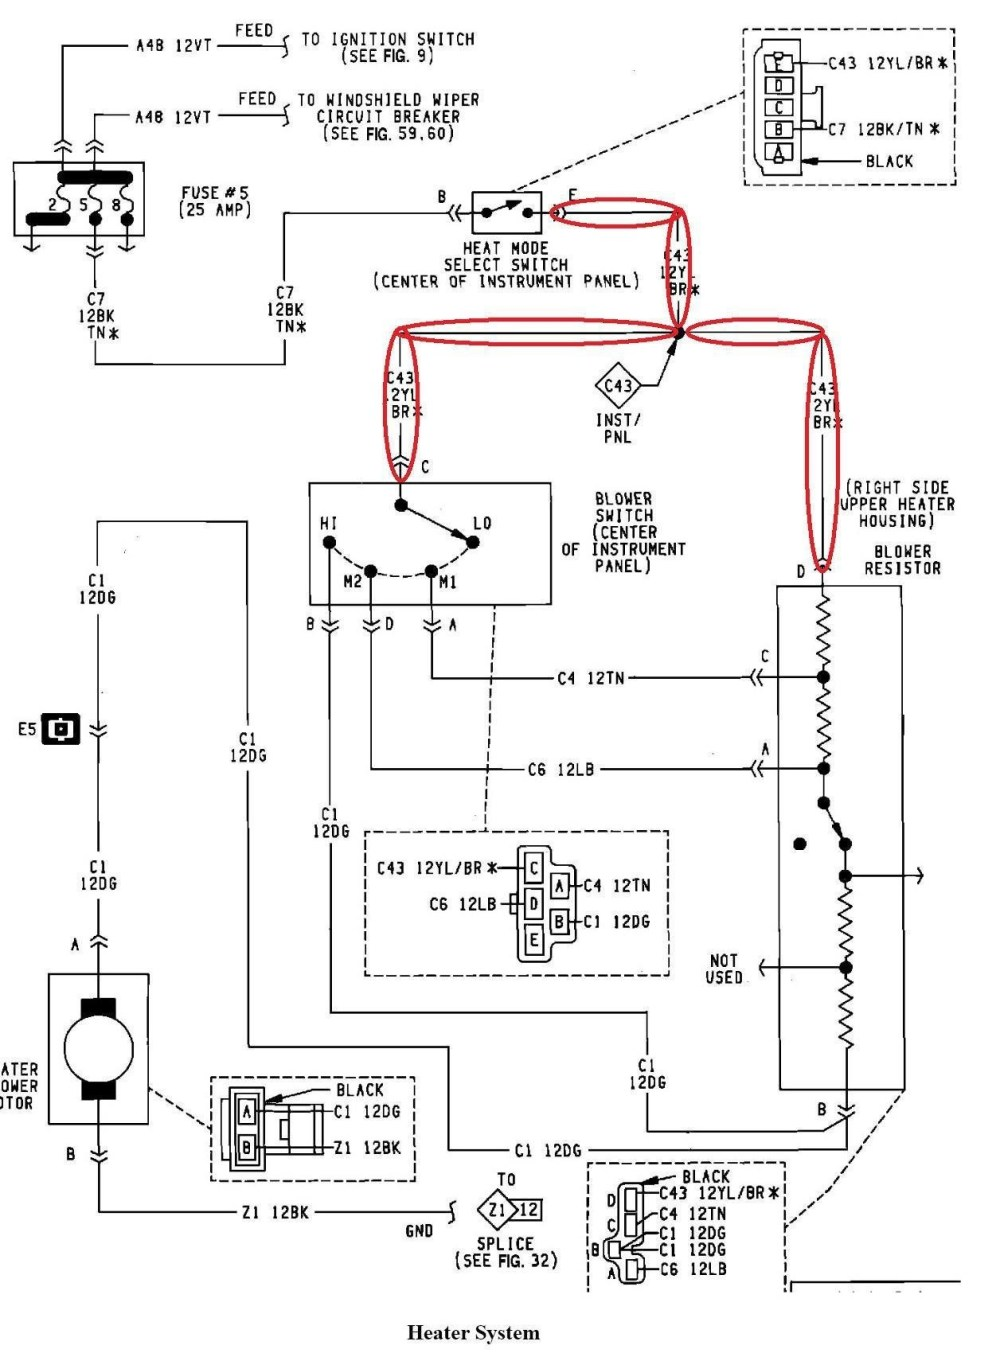 medium resolution of 36 volt ezgo txt wiring diagram wiring diagram sample ezgo 36 volt charger wiring diagram 36